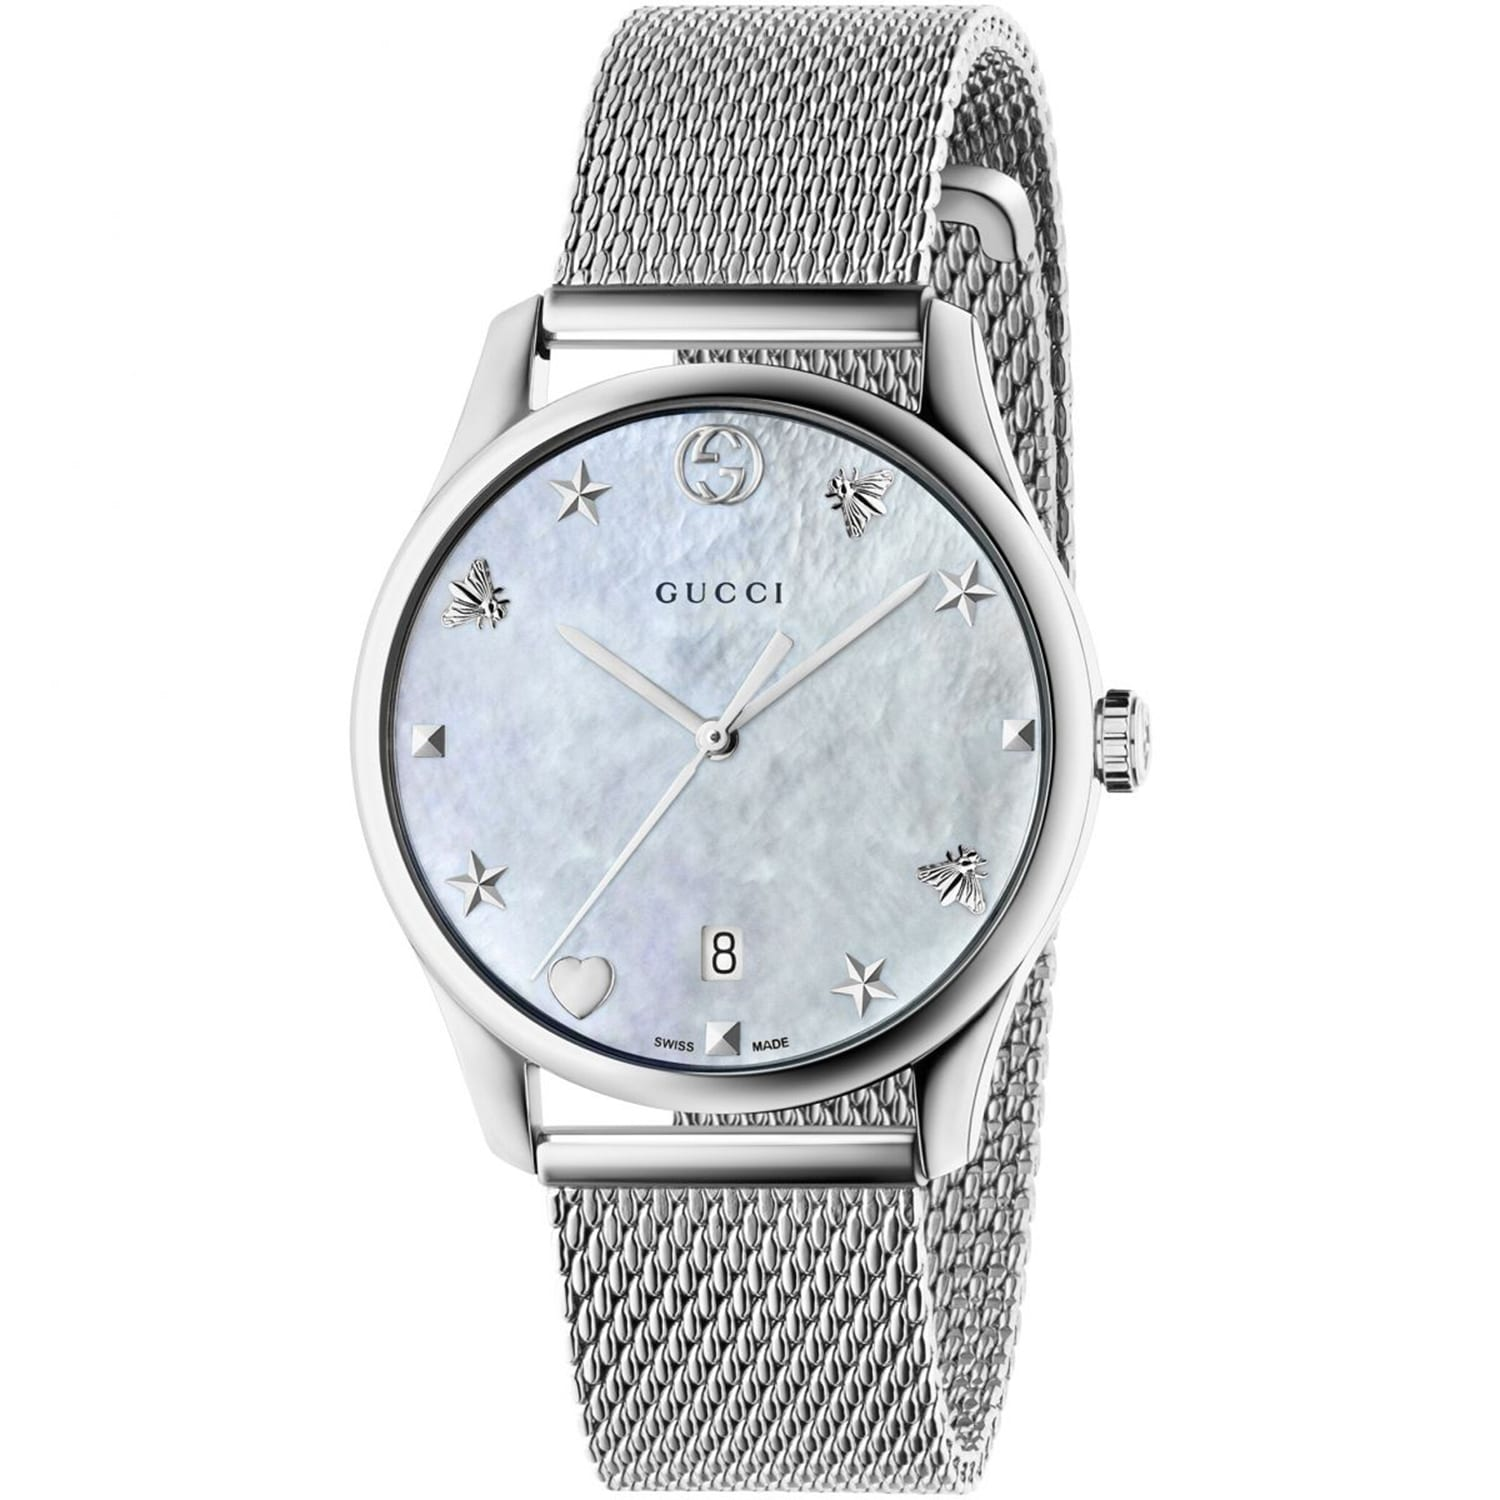 aec295309c0 Gucci Women s Watches